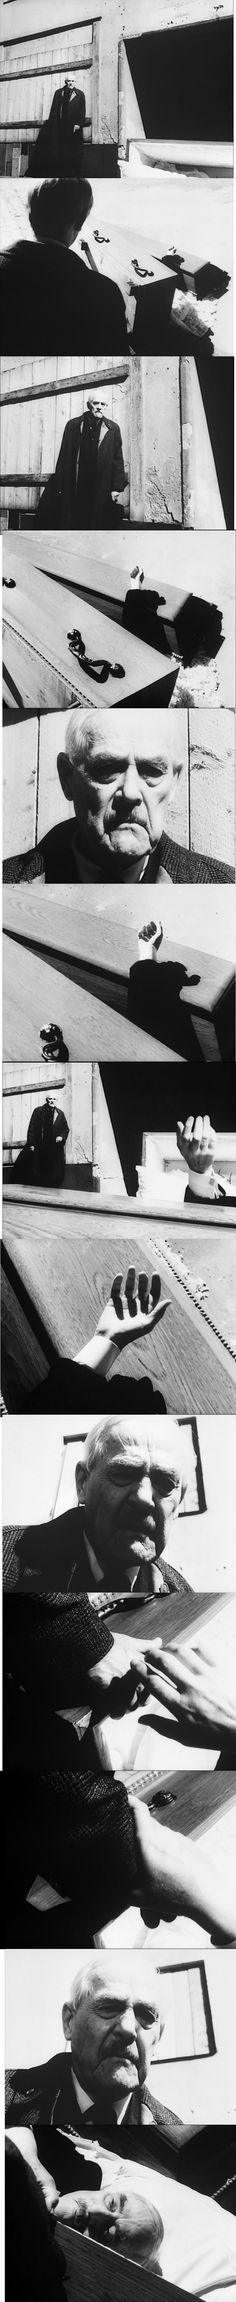 Isak Borg, played by Victor Sjostrom, confronting images of impending death in a dream sequence of Wild Strawberries 1957.